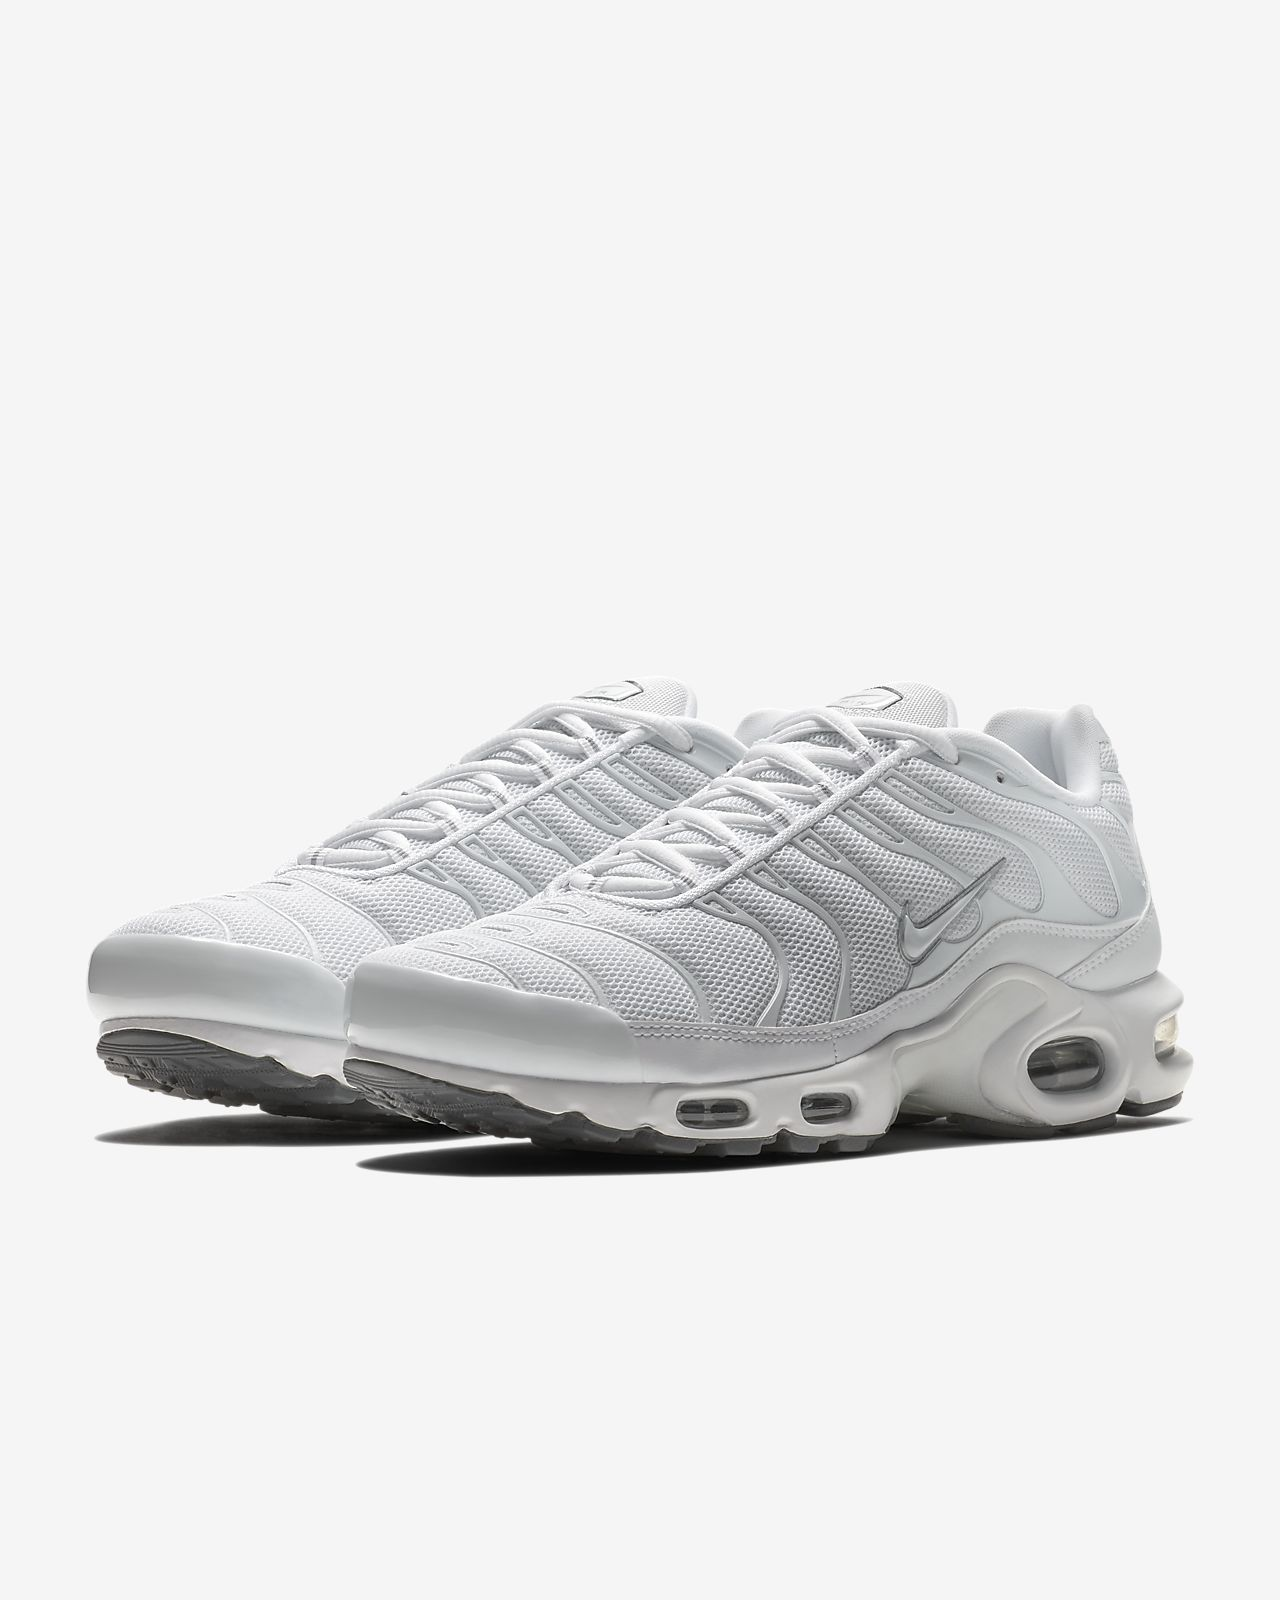 530c689179 Nike Air Max Plus Men's Shoe. Nike.com GB